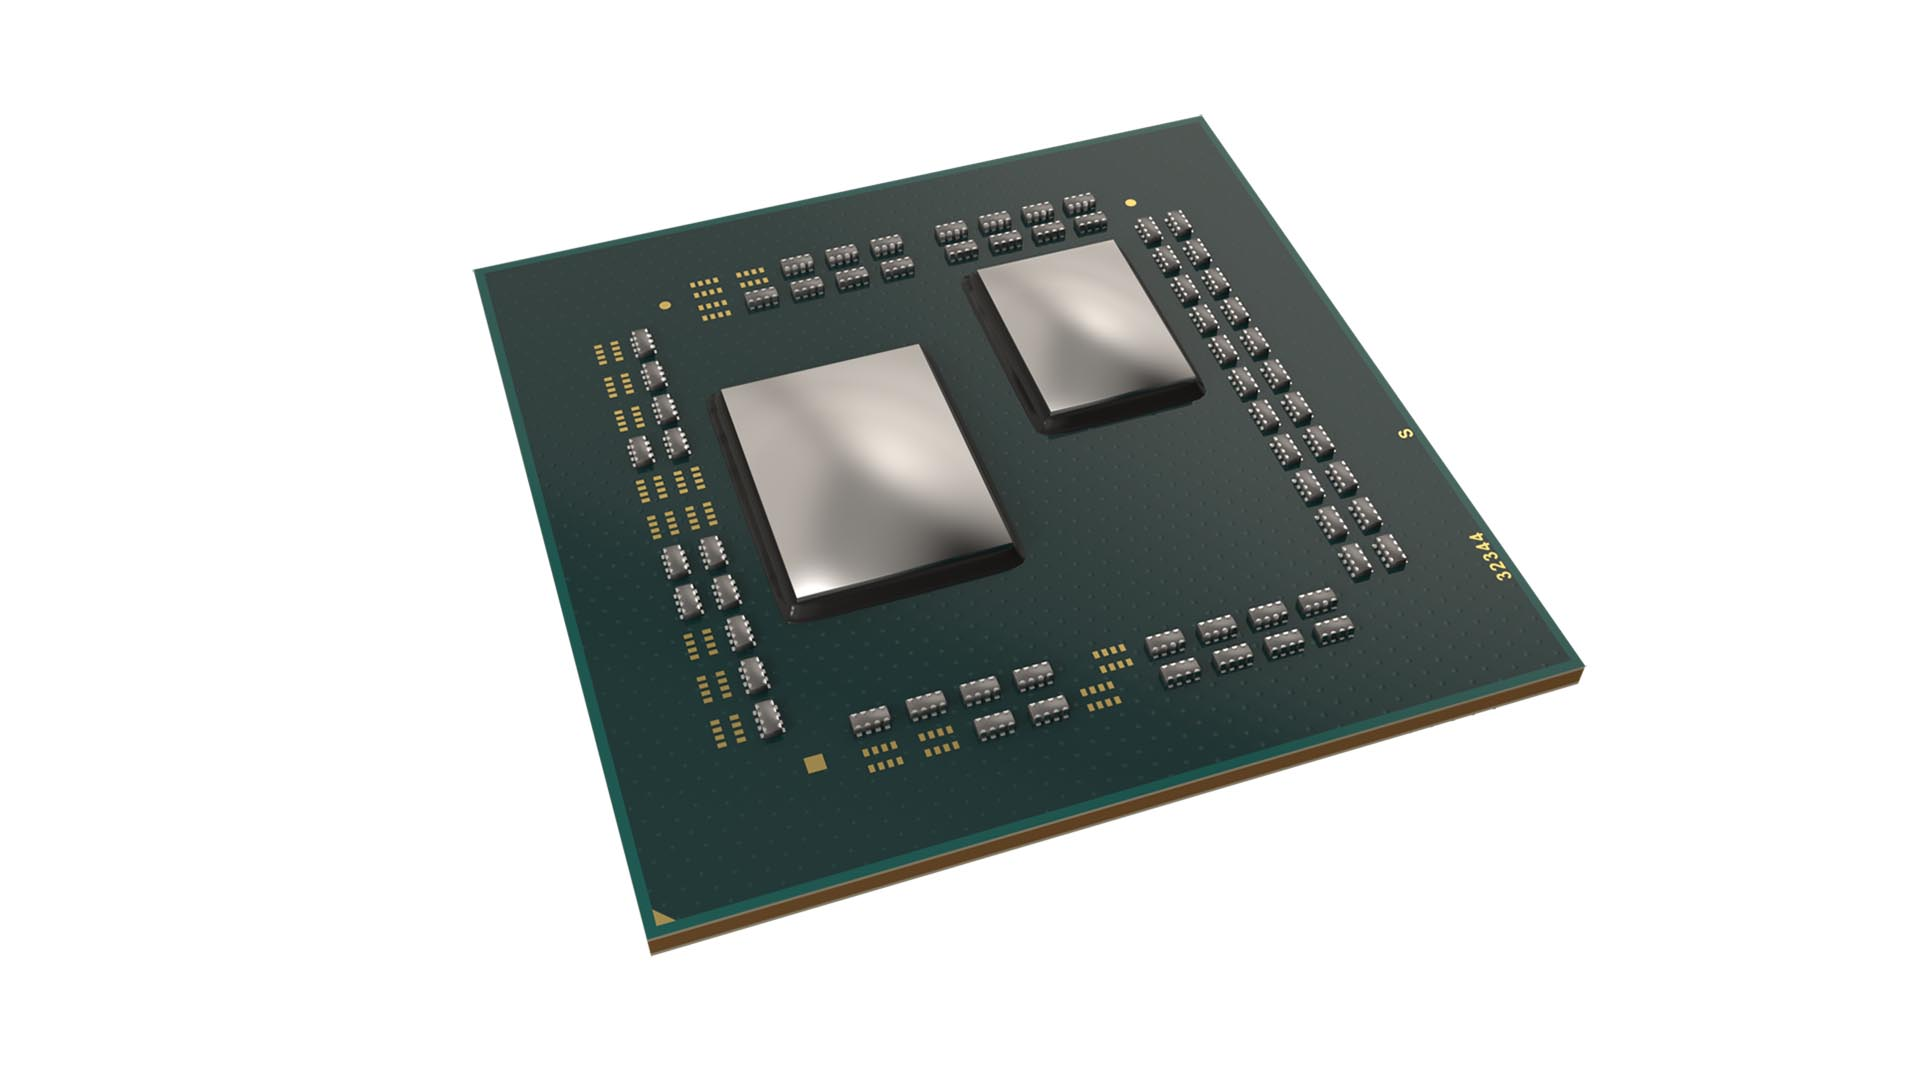 Your current AMD Ryzen motherboard may deliver PCIe 4 0